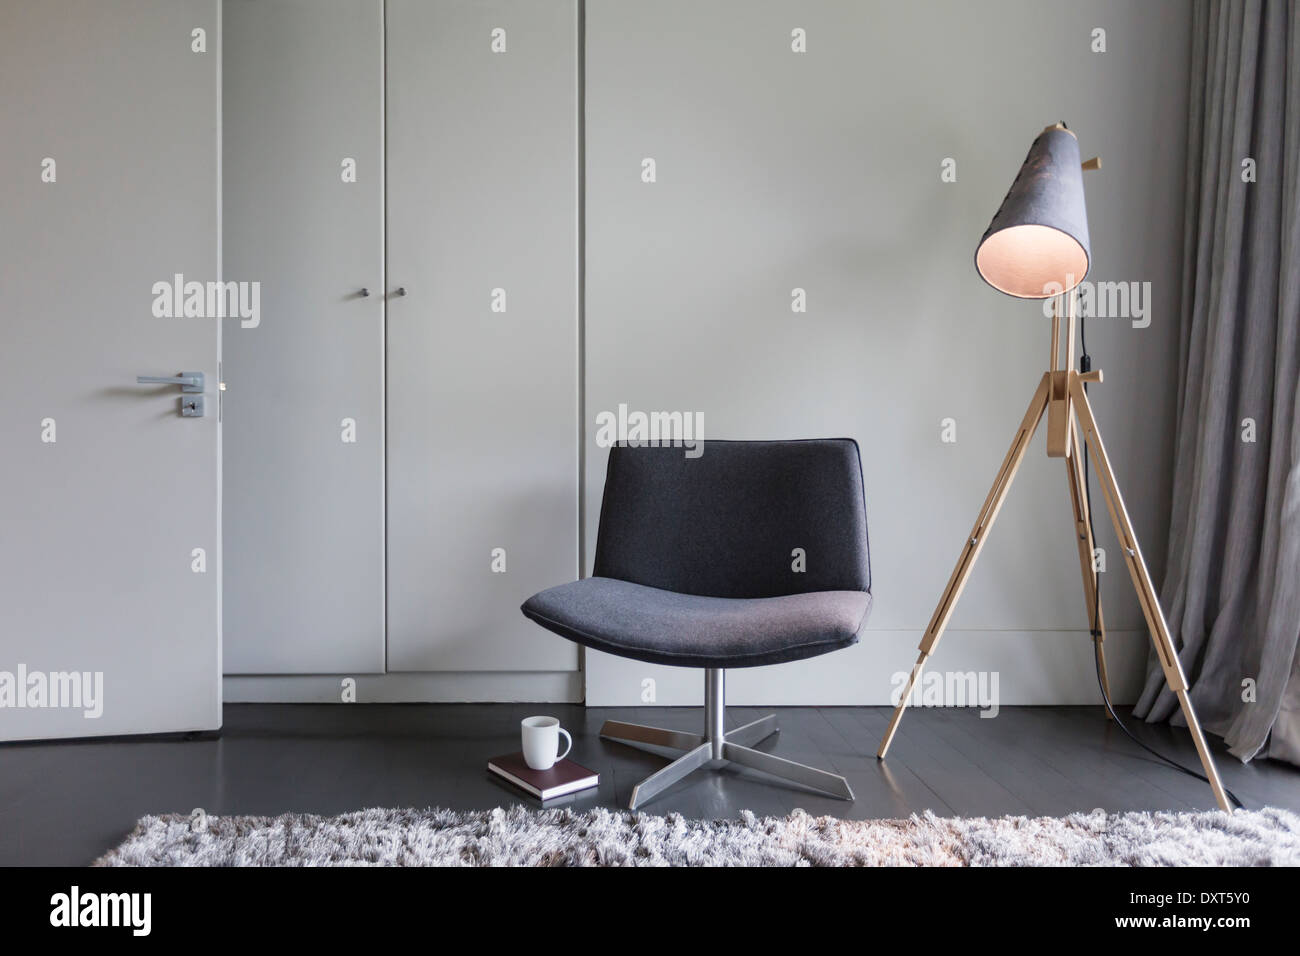 Modern chair and lamp - Stock Image